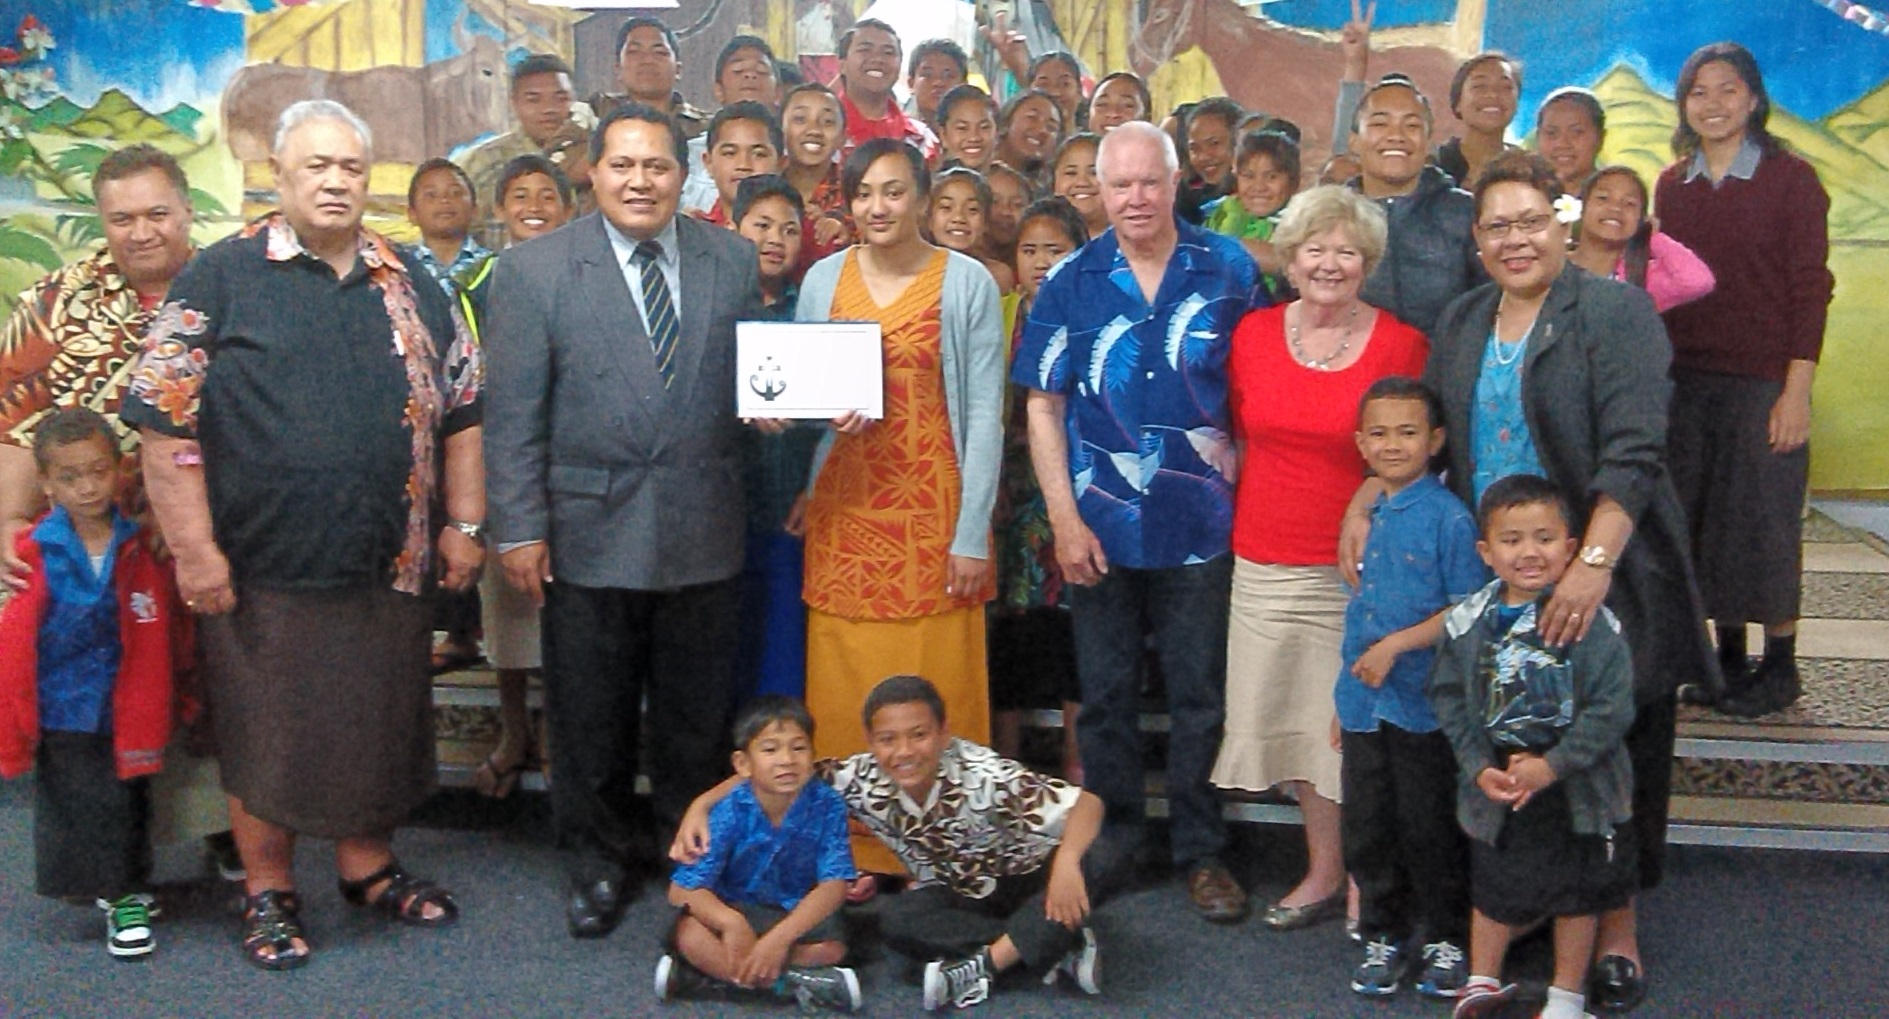 End of 2015 celebration at the homework centre in Mangere East